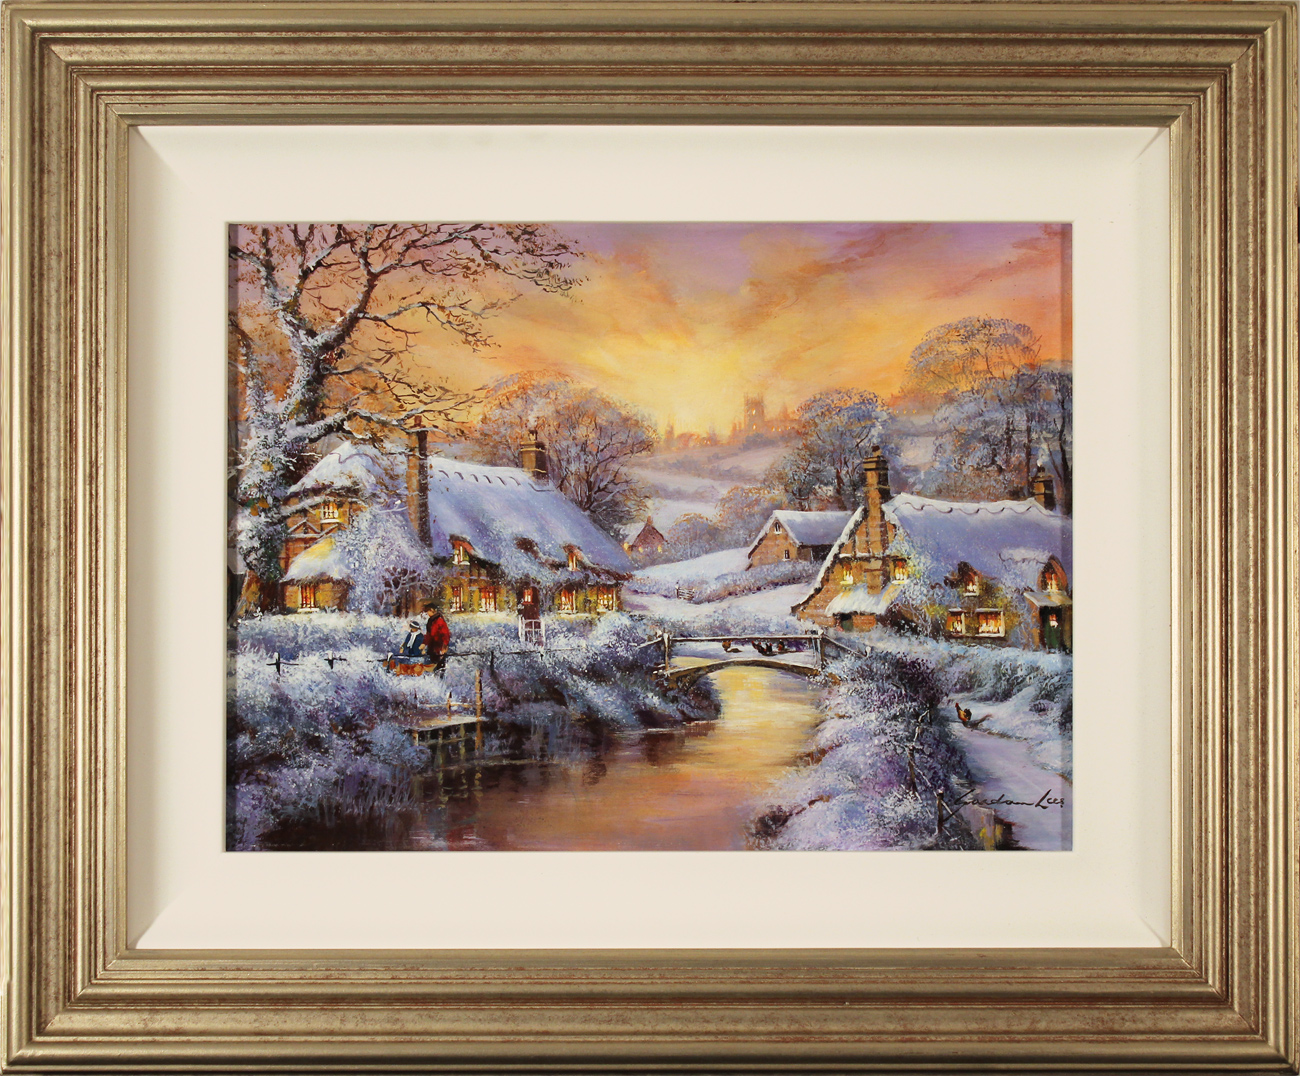 Gordon Lees, Original oil painting on panel, Freshly Fallen Snow, The Cotswolds Click to enlarge